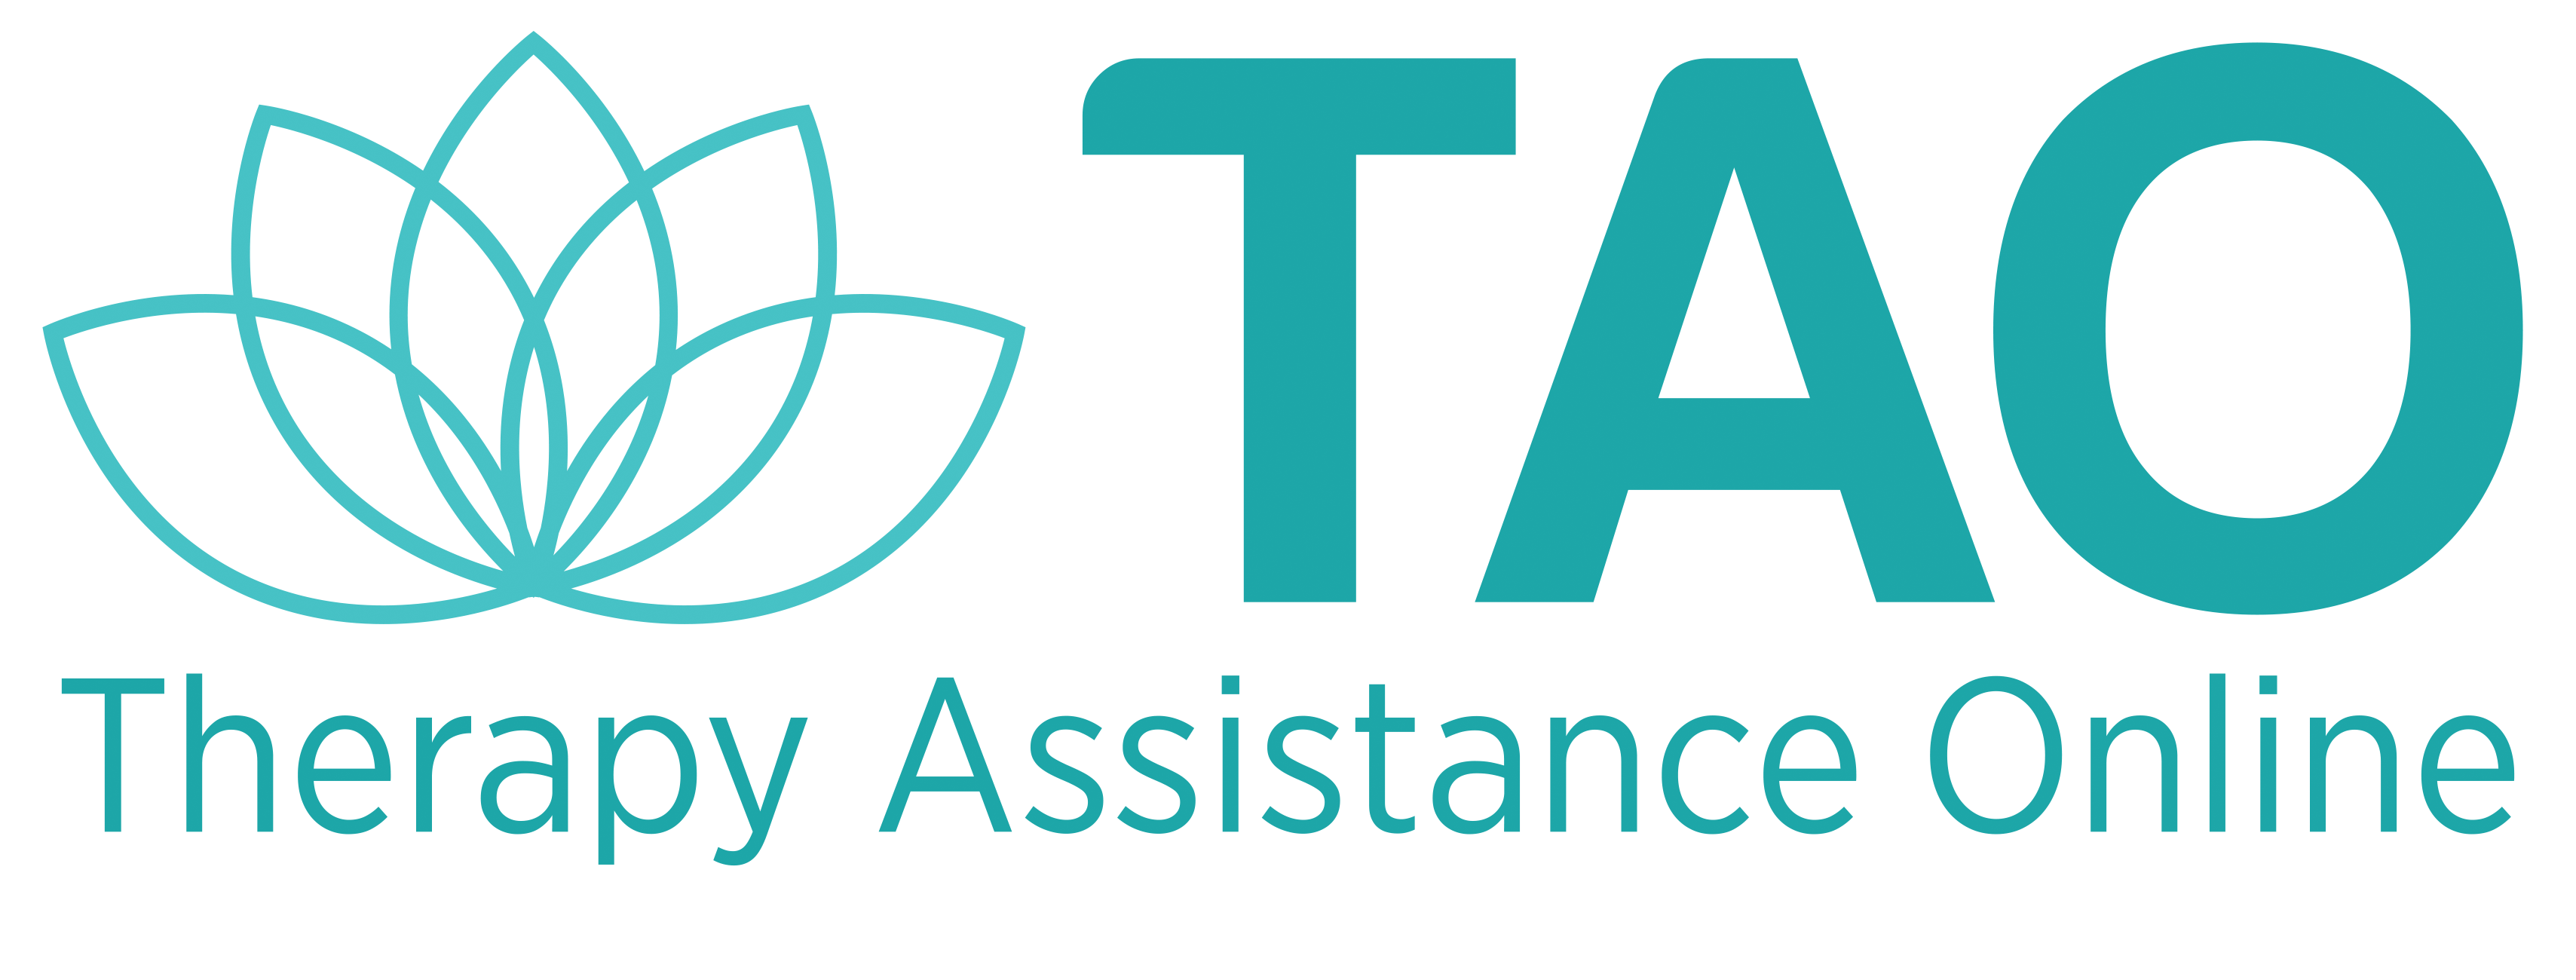 TAO Therapy Assistance Online Logo.